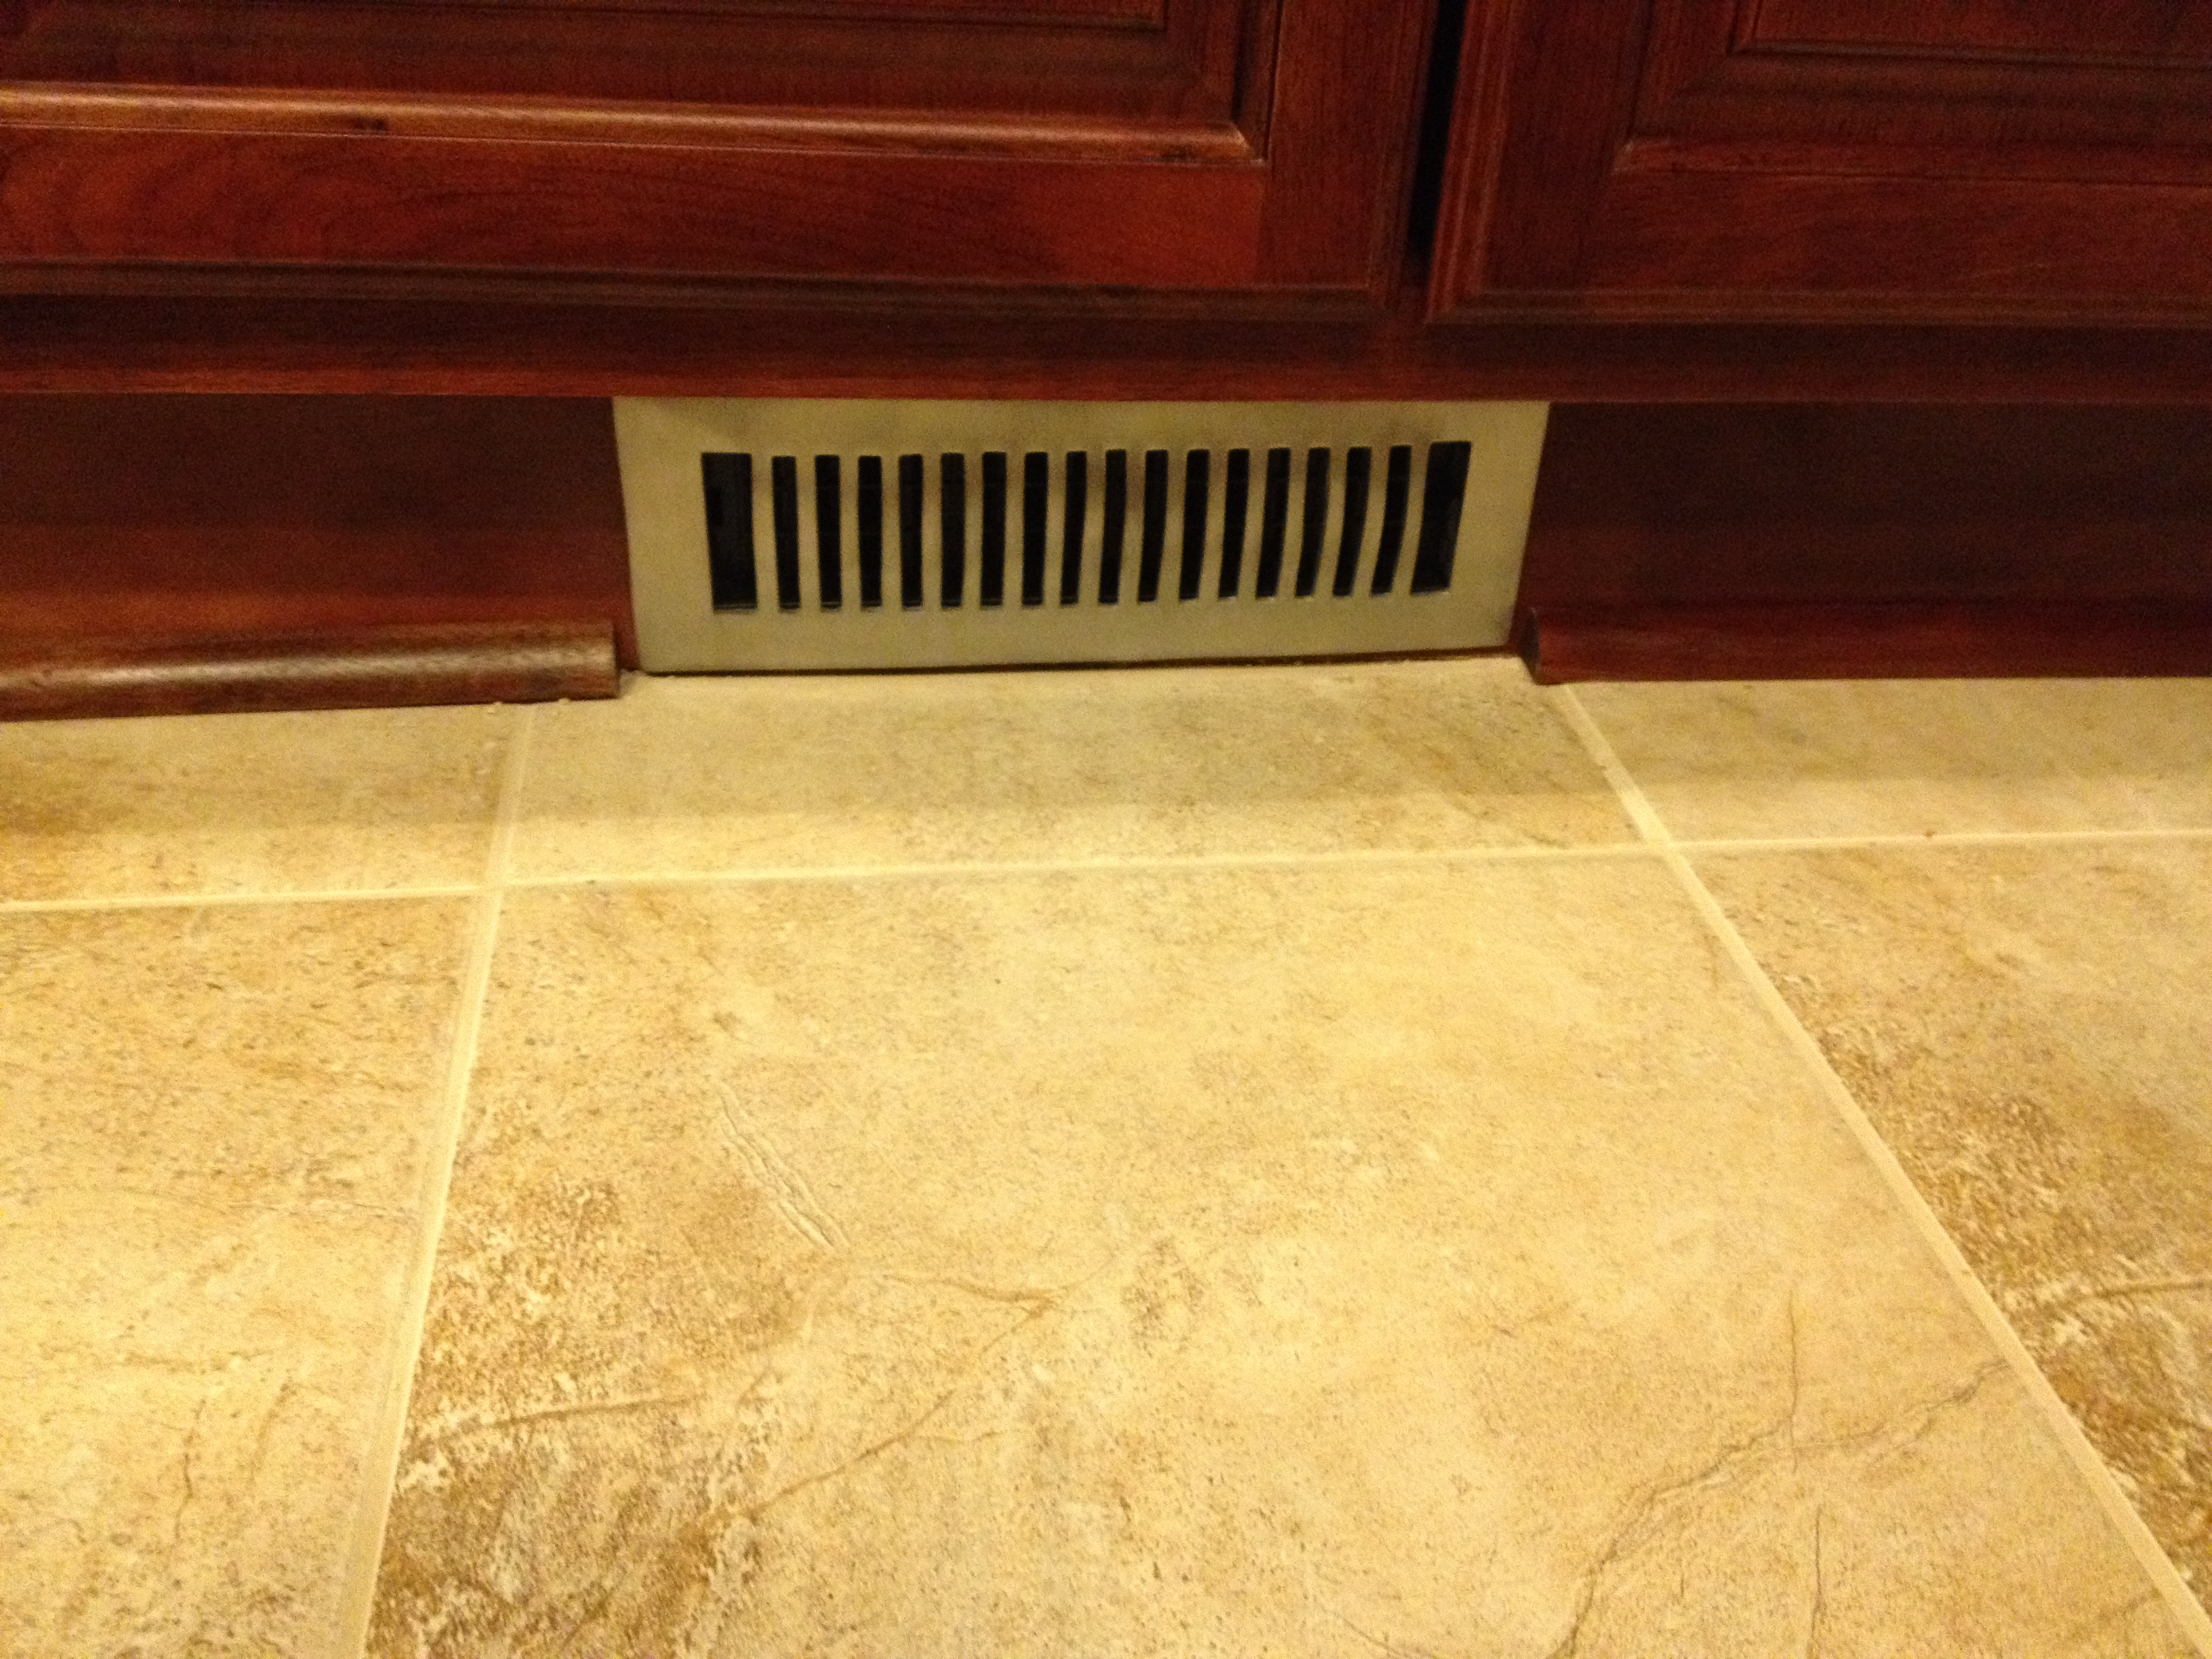 How to cut base molding around wall vent - Quarter Molding Around The Vent Nice Close Up Of The Tile Too